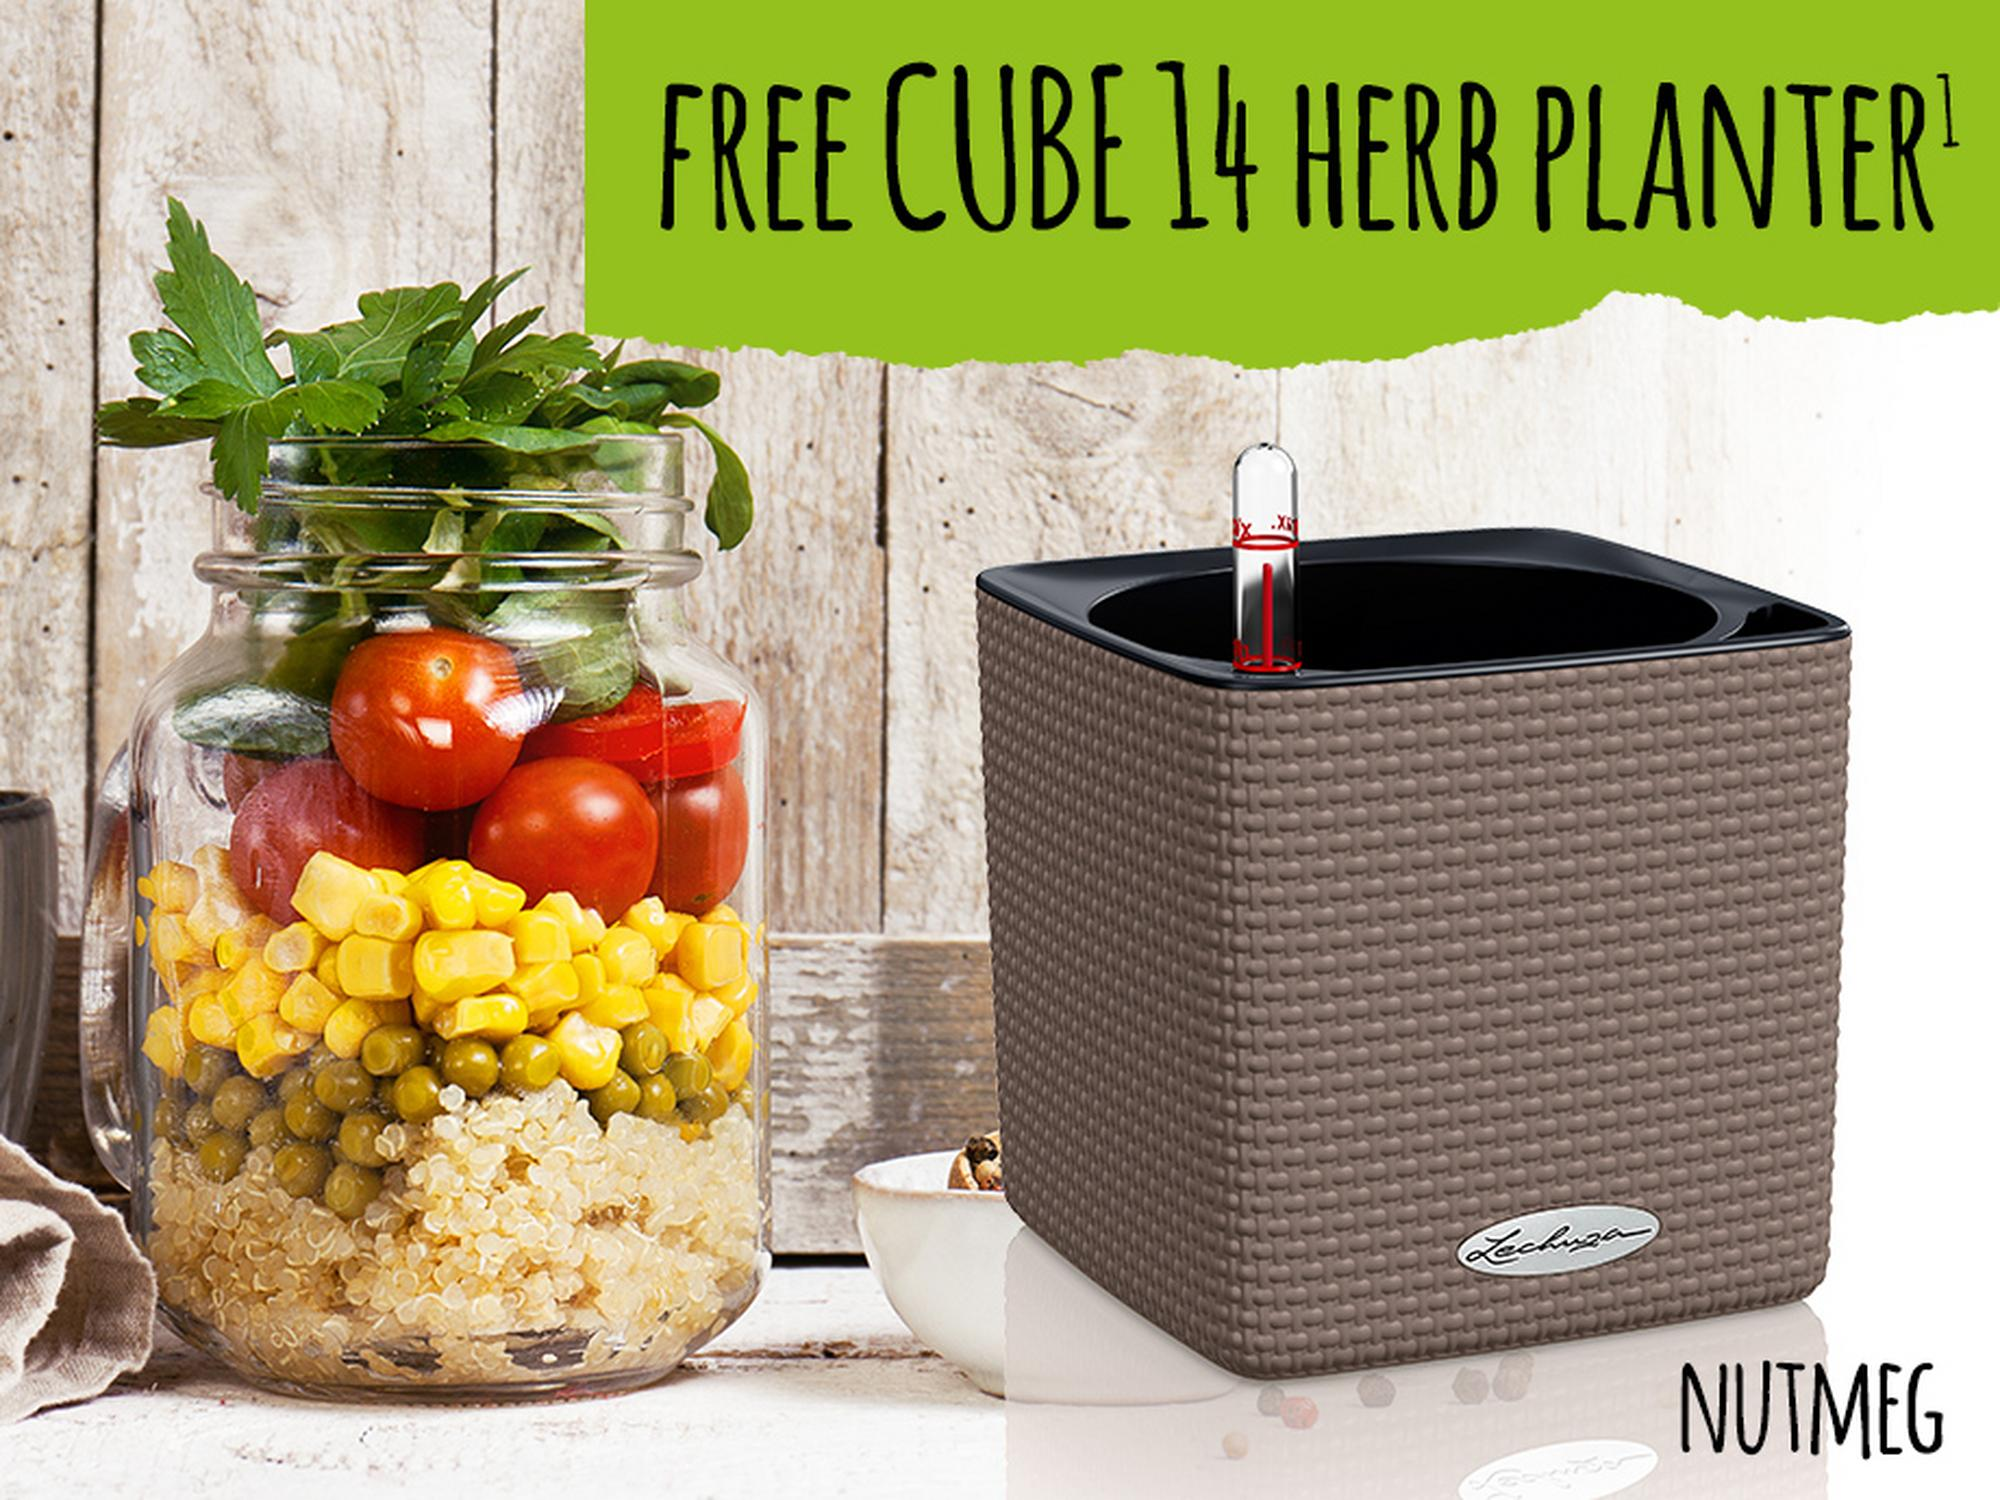 Get a free CUBE 14 Herb planter nutmeg on all orders over £199